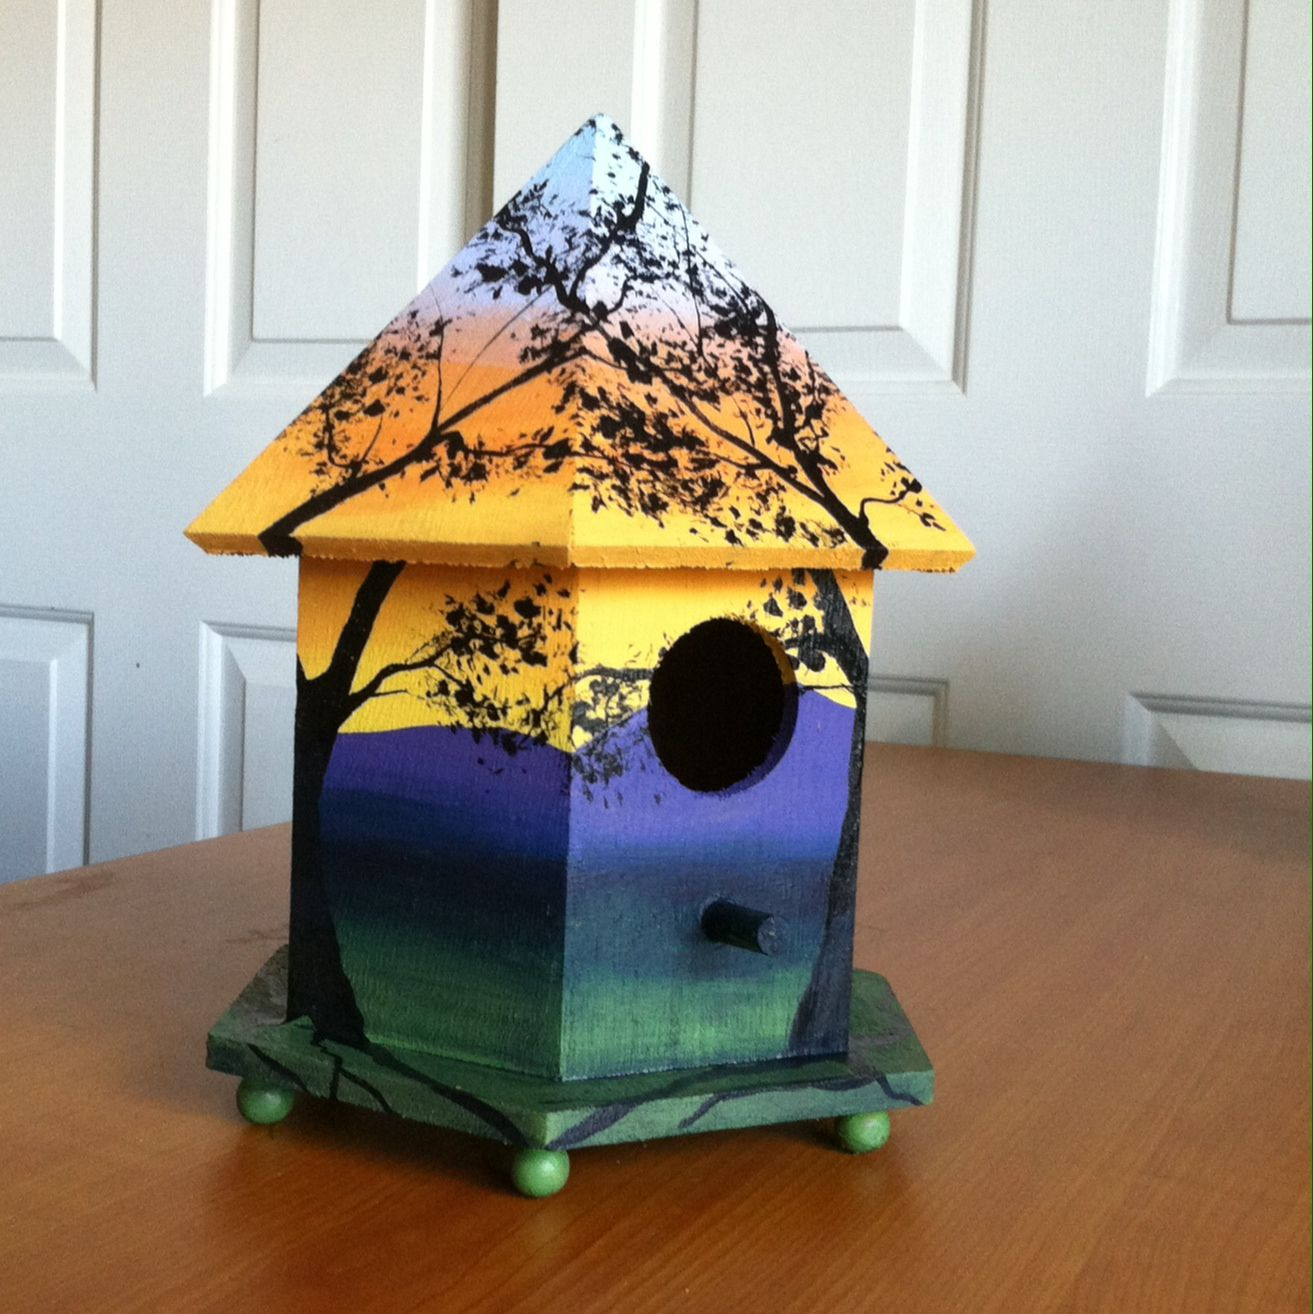 efdbdc5d033521cbb6a2205c9f4d10d0 Painted Bird Houses Designs Ideas on home office design ideas, painted bird house craft, painted wood bird house, painted bird house with cat, computer nerd gift ideas, painted wood craft ideas, painted dresser ideas, pet cool house ideas, painted furniture, painted red and white bird, painted owl bird house, jewelry designs ideas, painted bird house roof, painted decorative bird houses designs, painted gingerbread house craft,